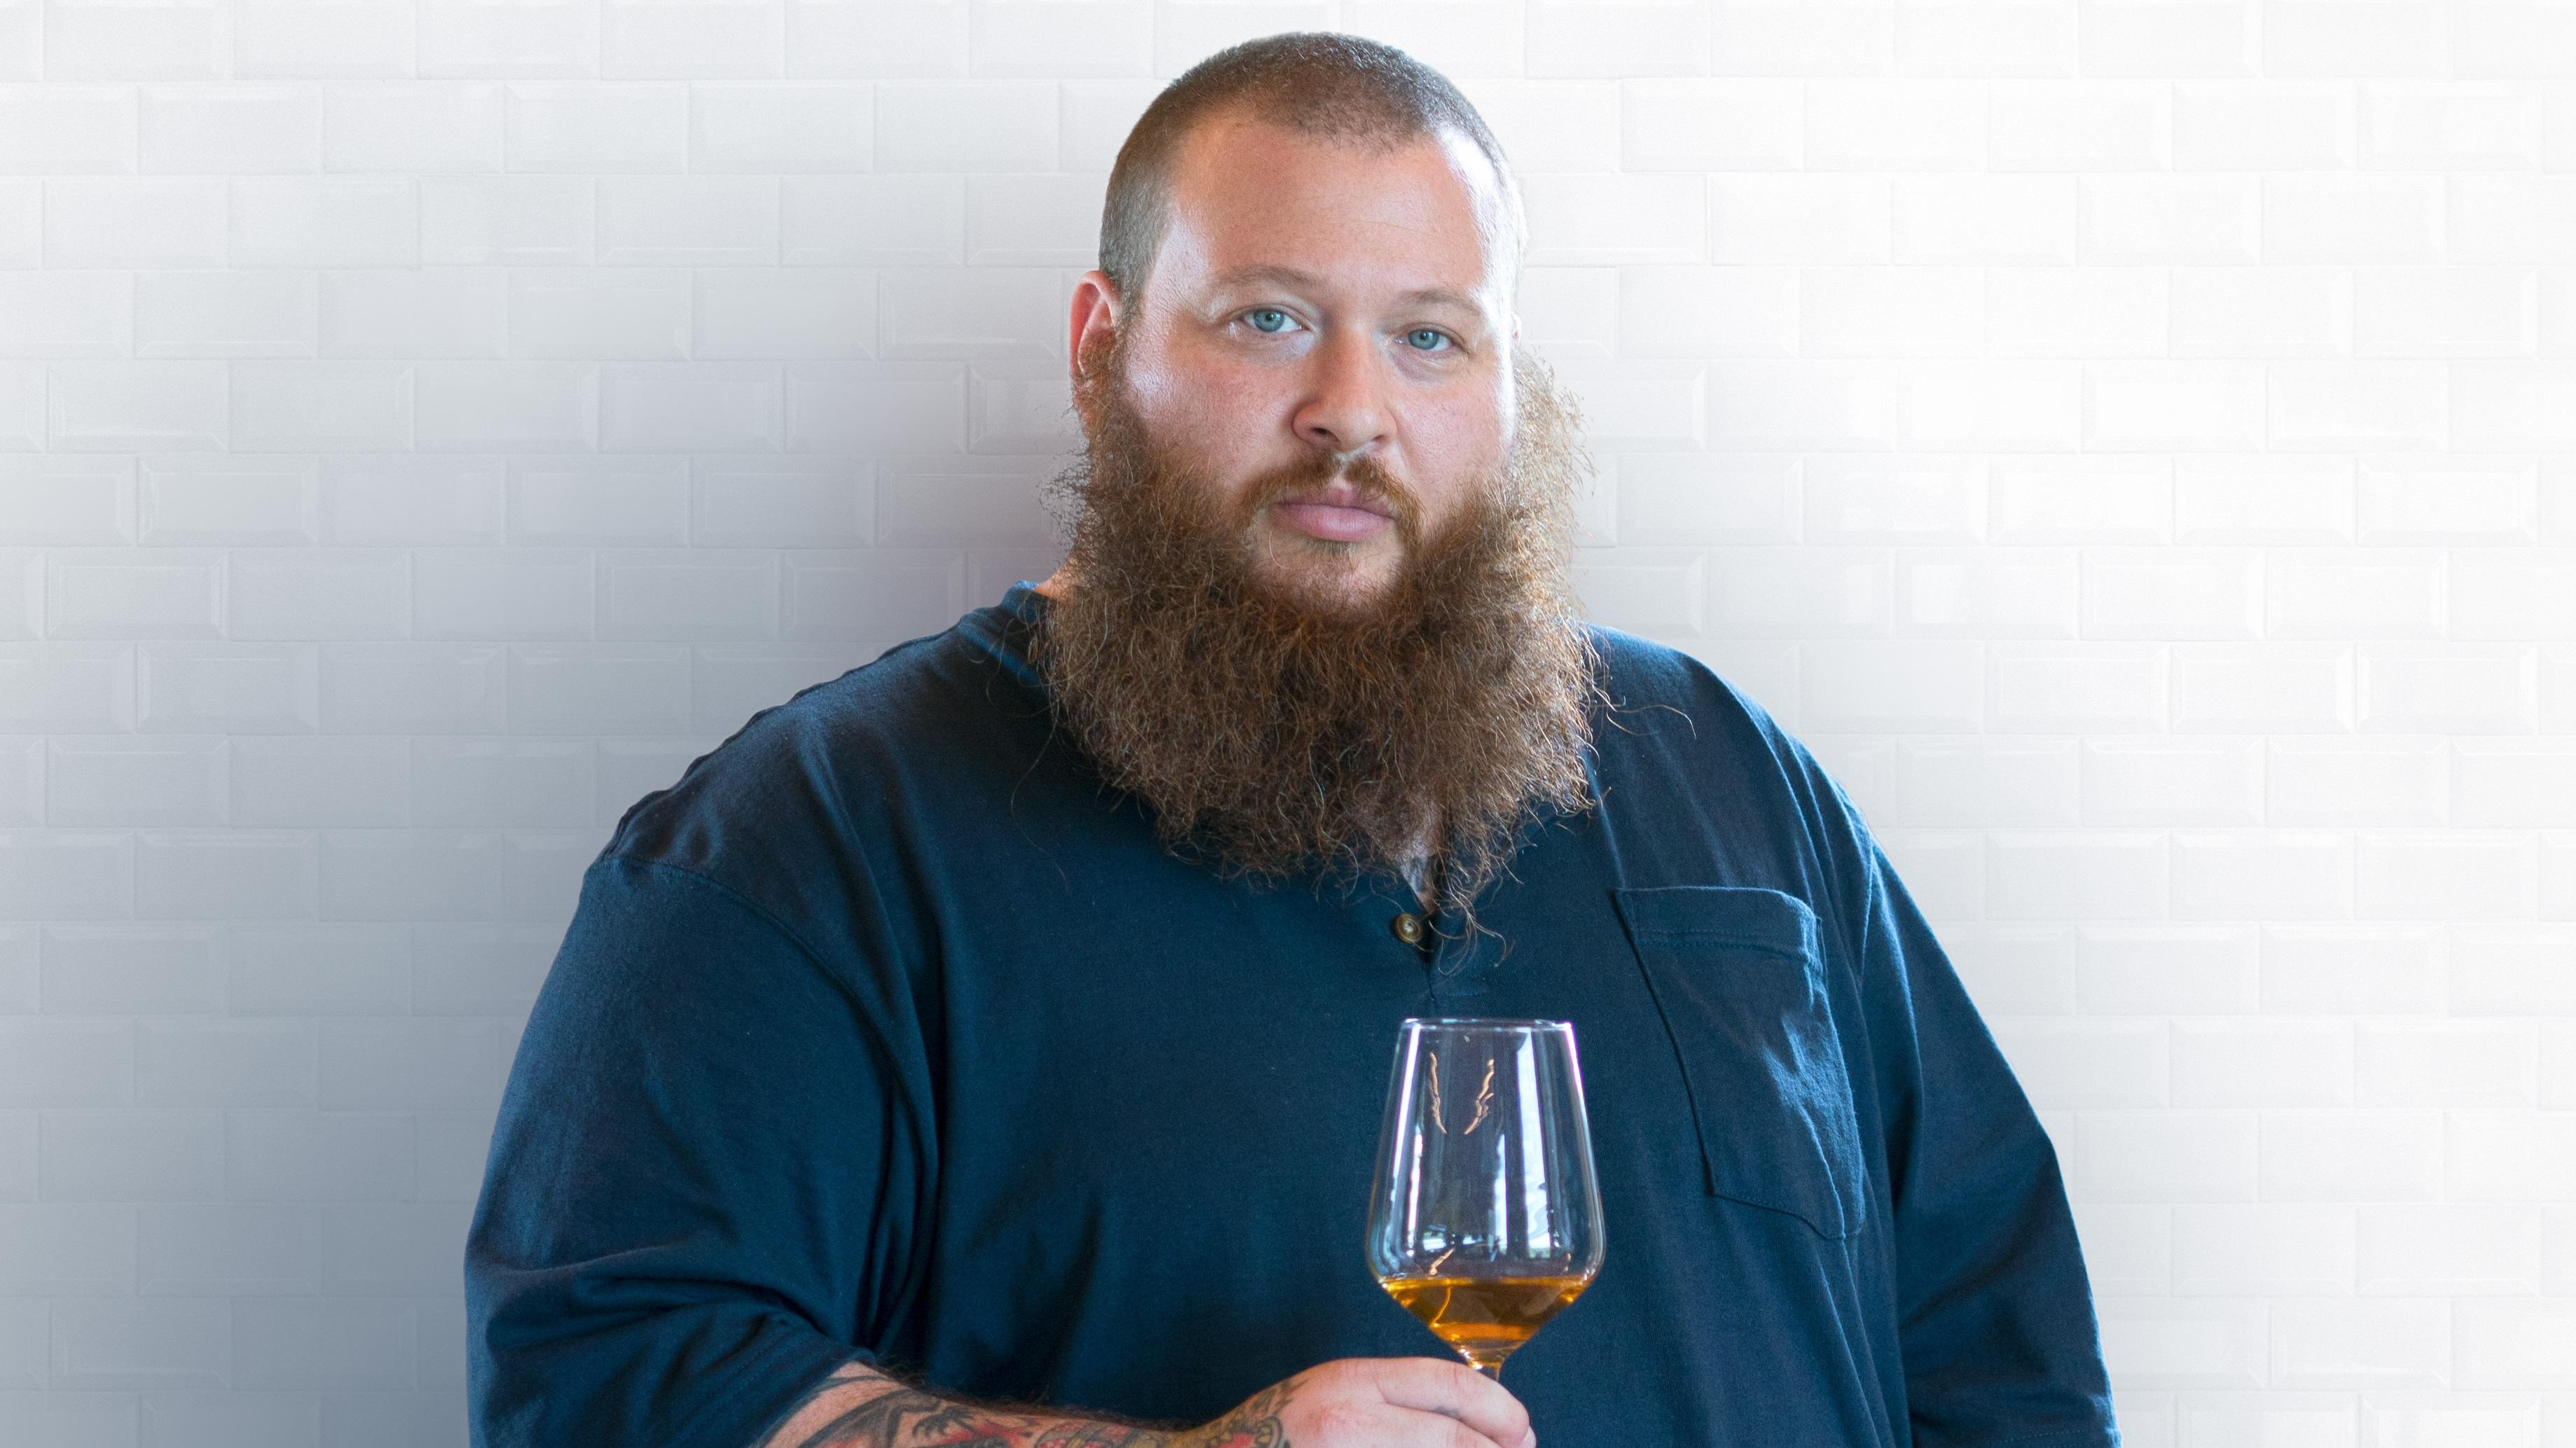 bronson personals Action bronson in 2018: is he married or dating a new girlfriend how rich is he does action bronson have tattoos does he smoke + body measurements & other facts.